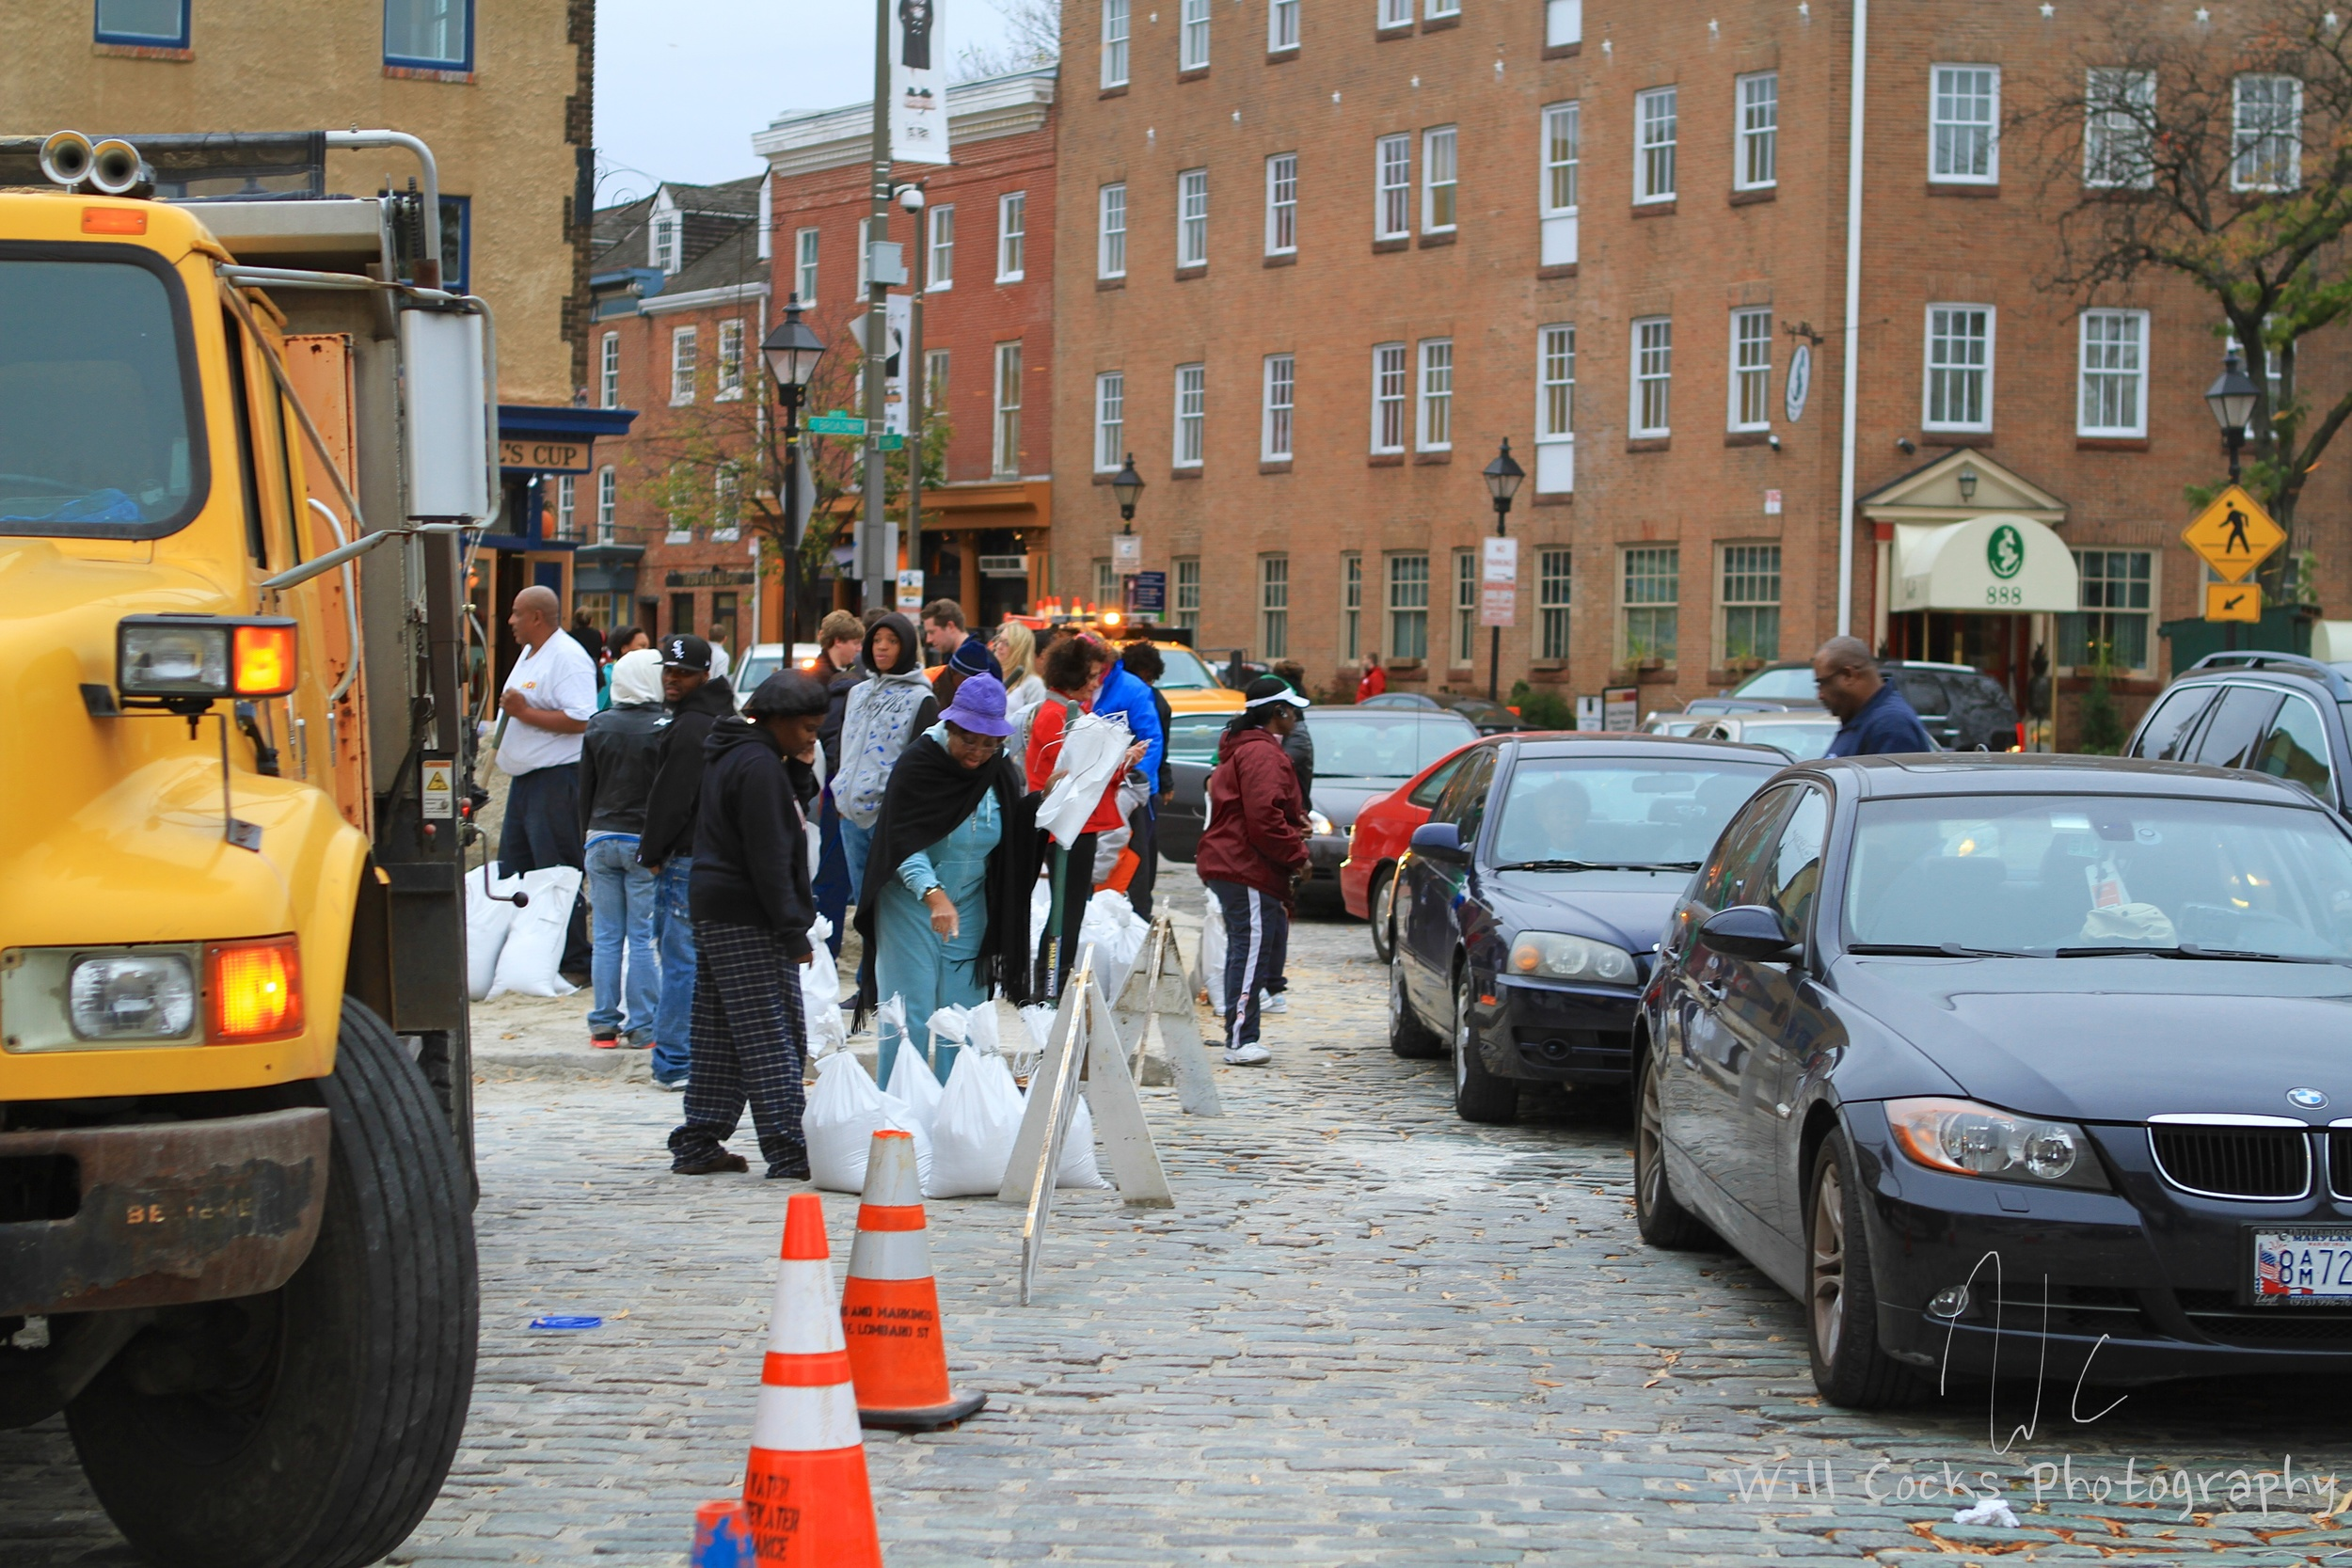 Thames St in Fells Point was a parking lot with people lined up to get their sand bags in preparation for Sandy.